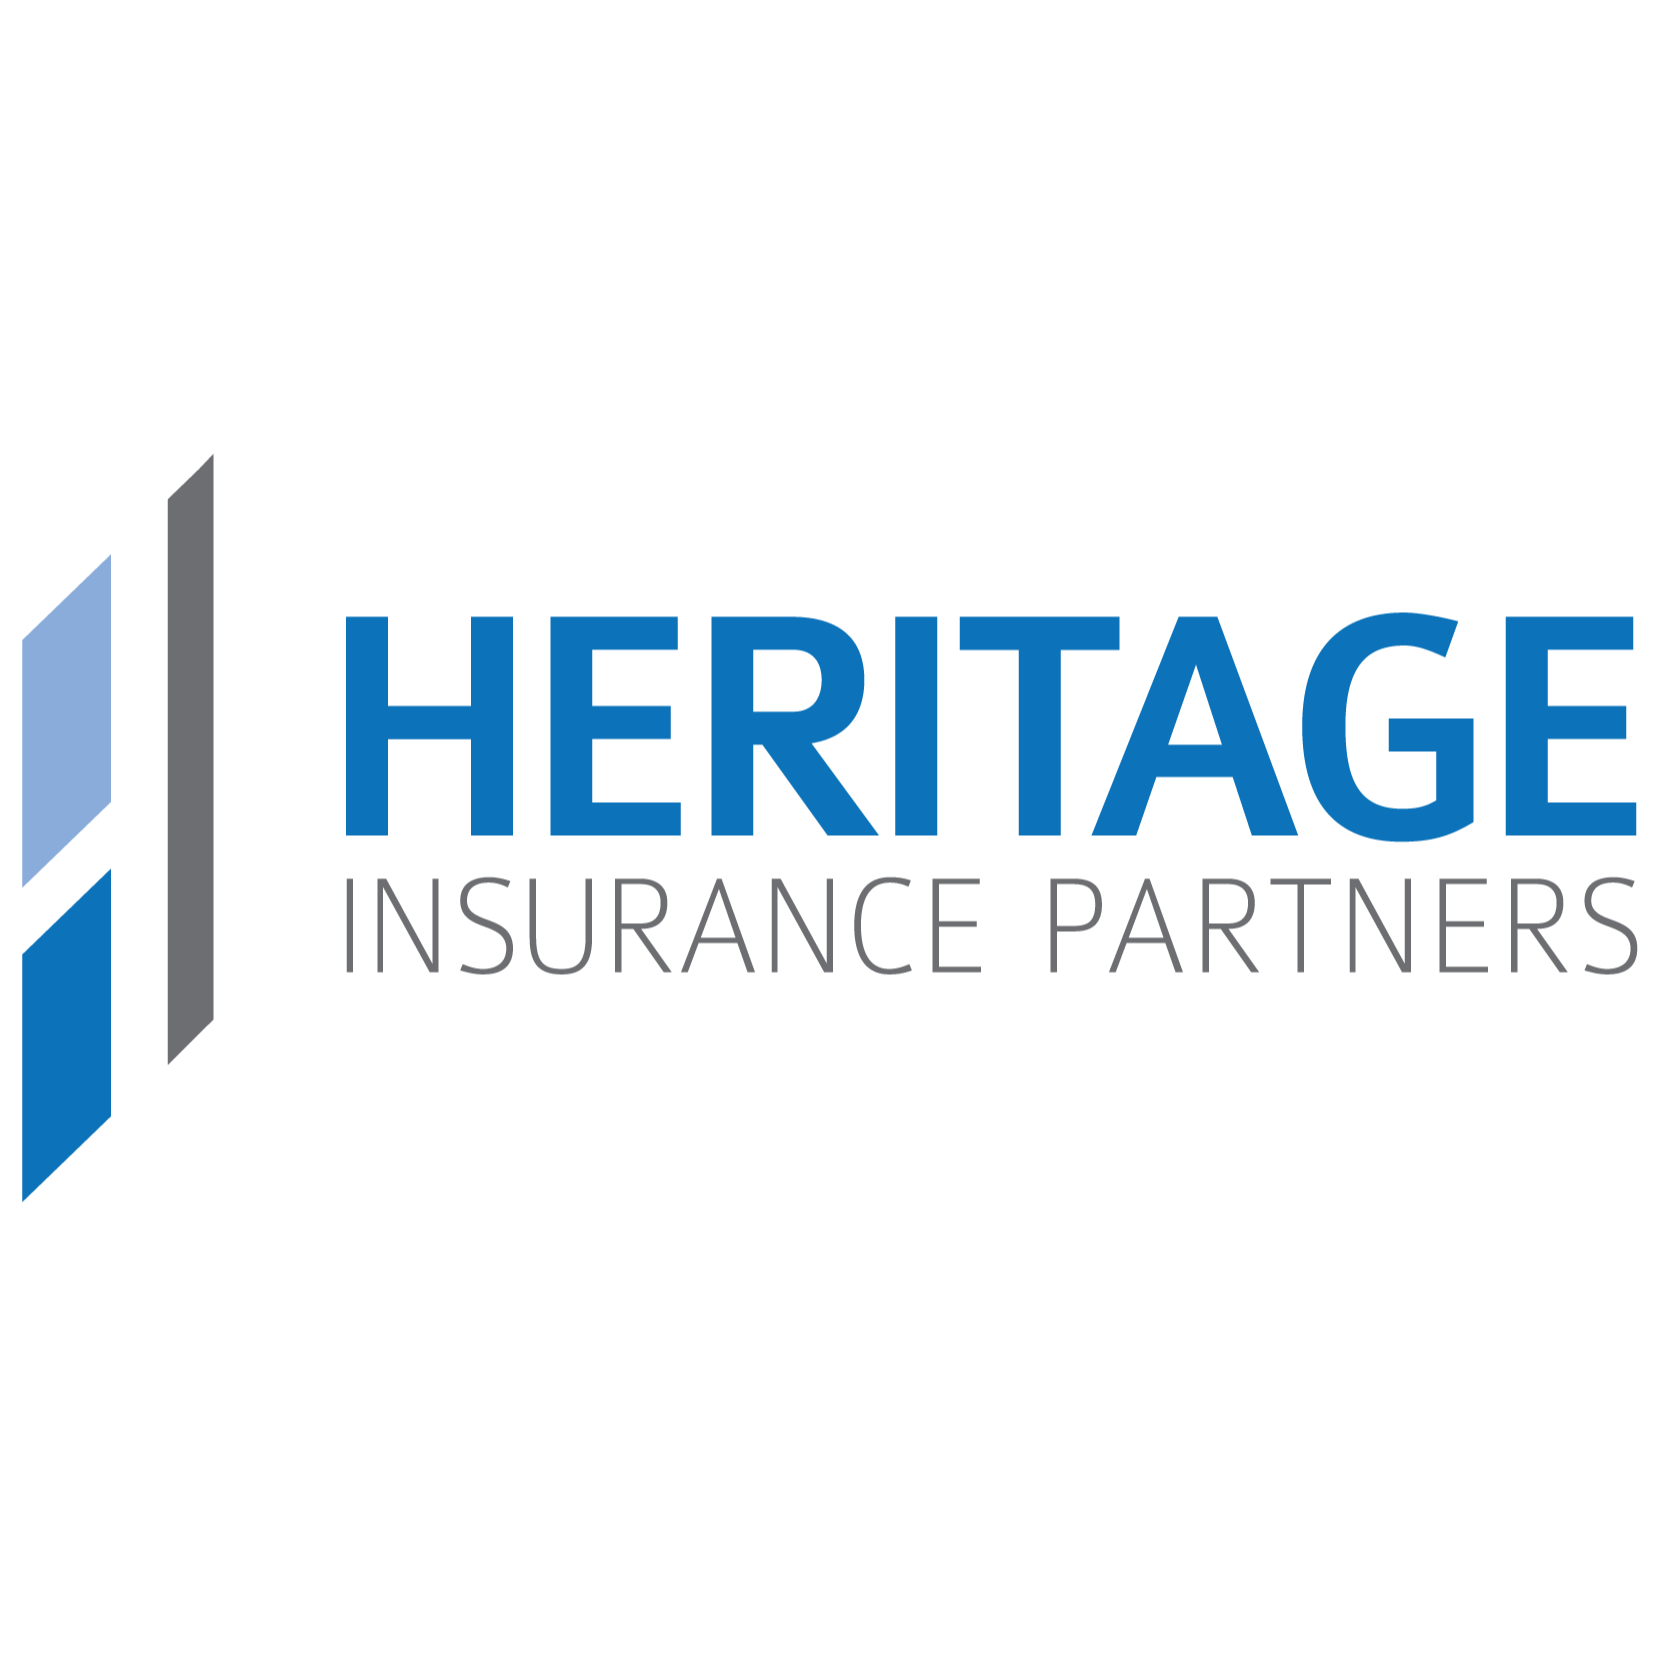 Heritage Insurance Partners, Midlothian - 23113 - Nationwide